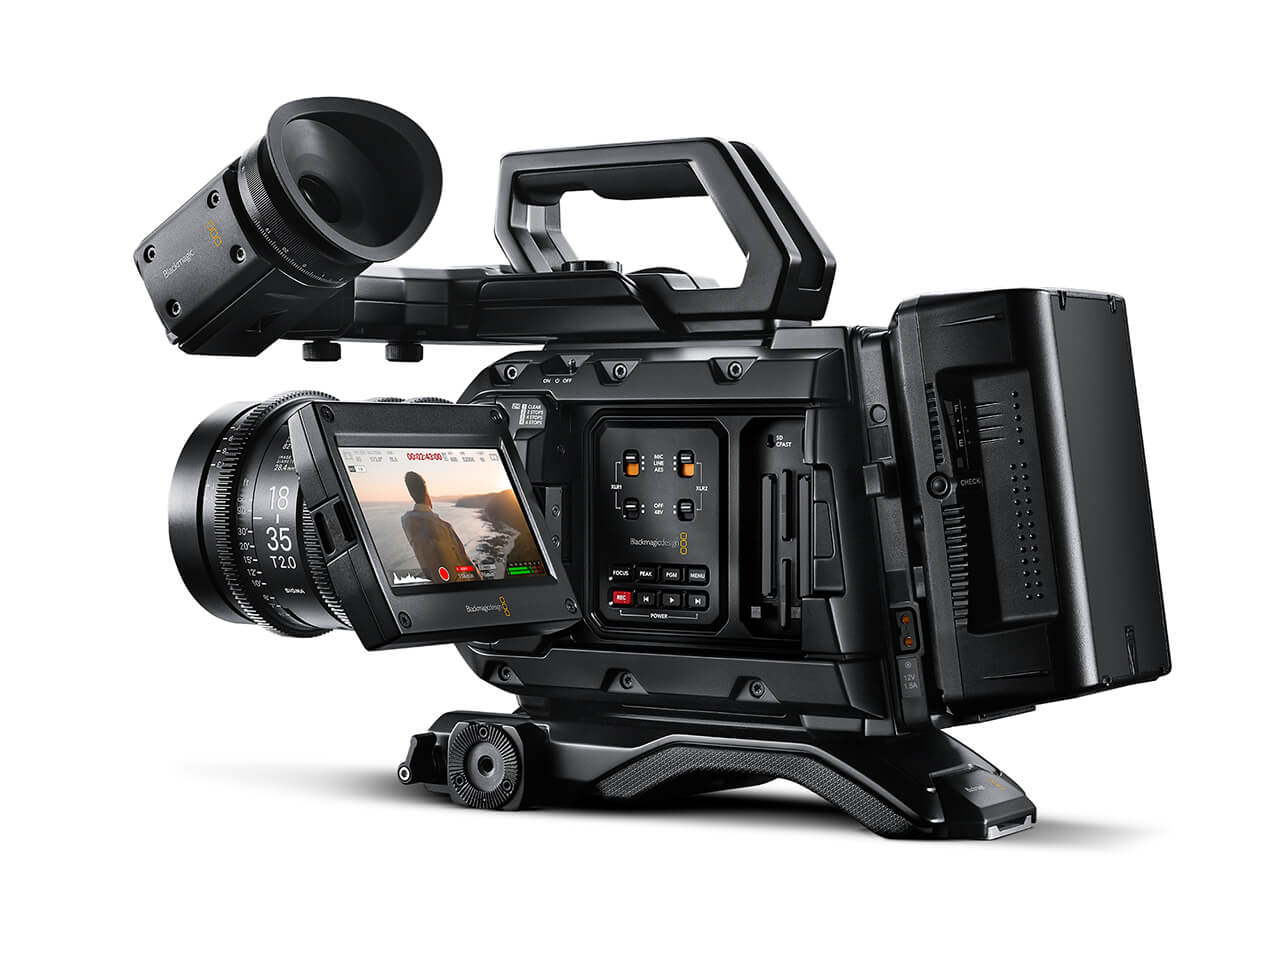 "BLACKMAGIC URSA MINI PRO 4.6K - Blackmagic Shoulder MountBlackmagic ViewfinderAdaptador Dual CF a SSD2x SSD 512GB / 2x Lector SSD - USB35x Bateria V 90wh/h / 2x Cargador 2 Slots IDXTrípode Sachtler DV8 / EasyrigMonitor Blackmagic Video Assist 5""Baseplate 15mm Shoot35Mando de Foco Manual Shoot35Portafiltros 4x4 Shoot352x Handle Grip4x Barras 15mm Carbono"